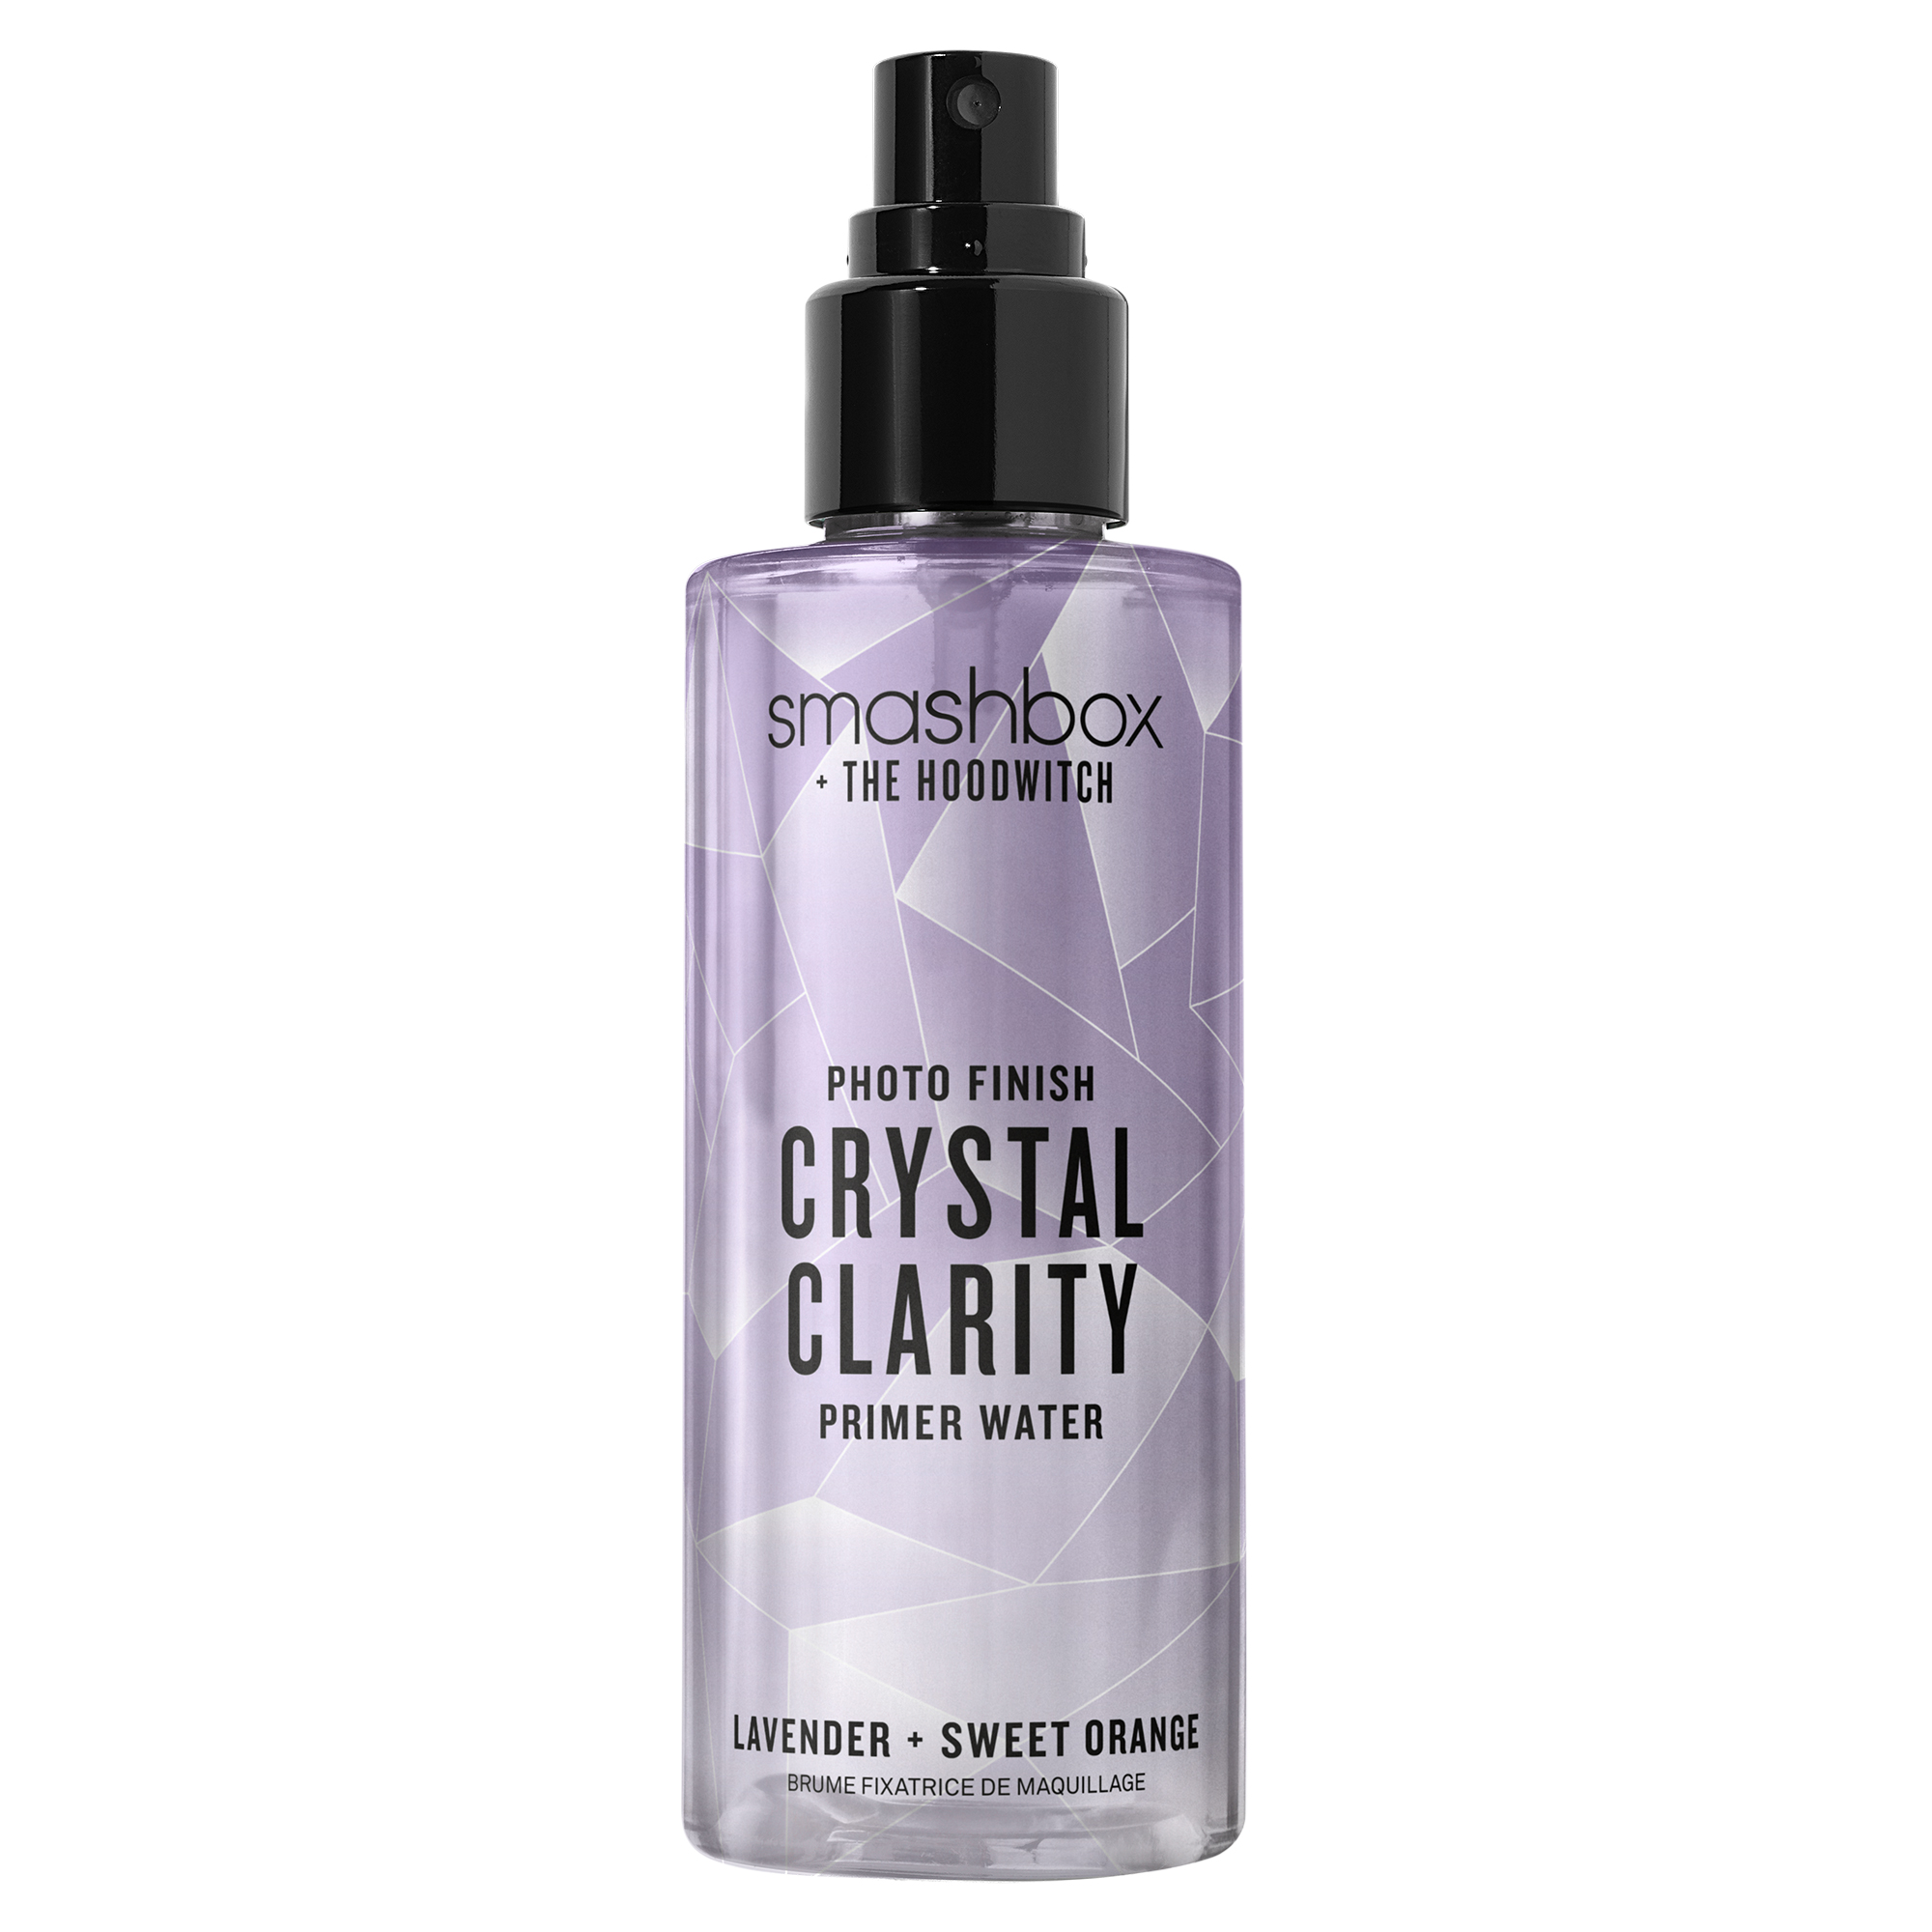 Crystalized Photo Finish Primer Water Crystal Clarity